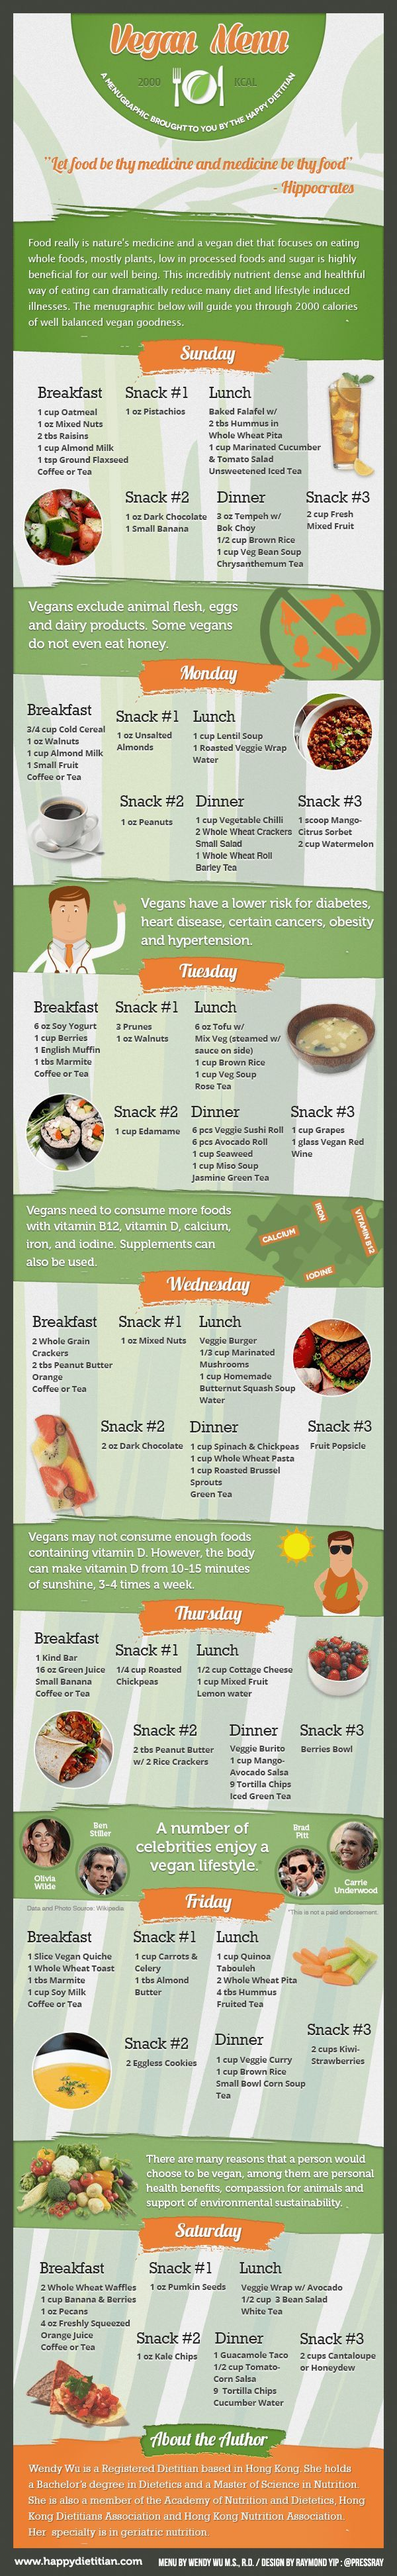 A Menugraphic Illustrating a 2000 Calorie Vegan Menu, with tips and information about living a vegan lifestyle.